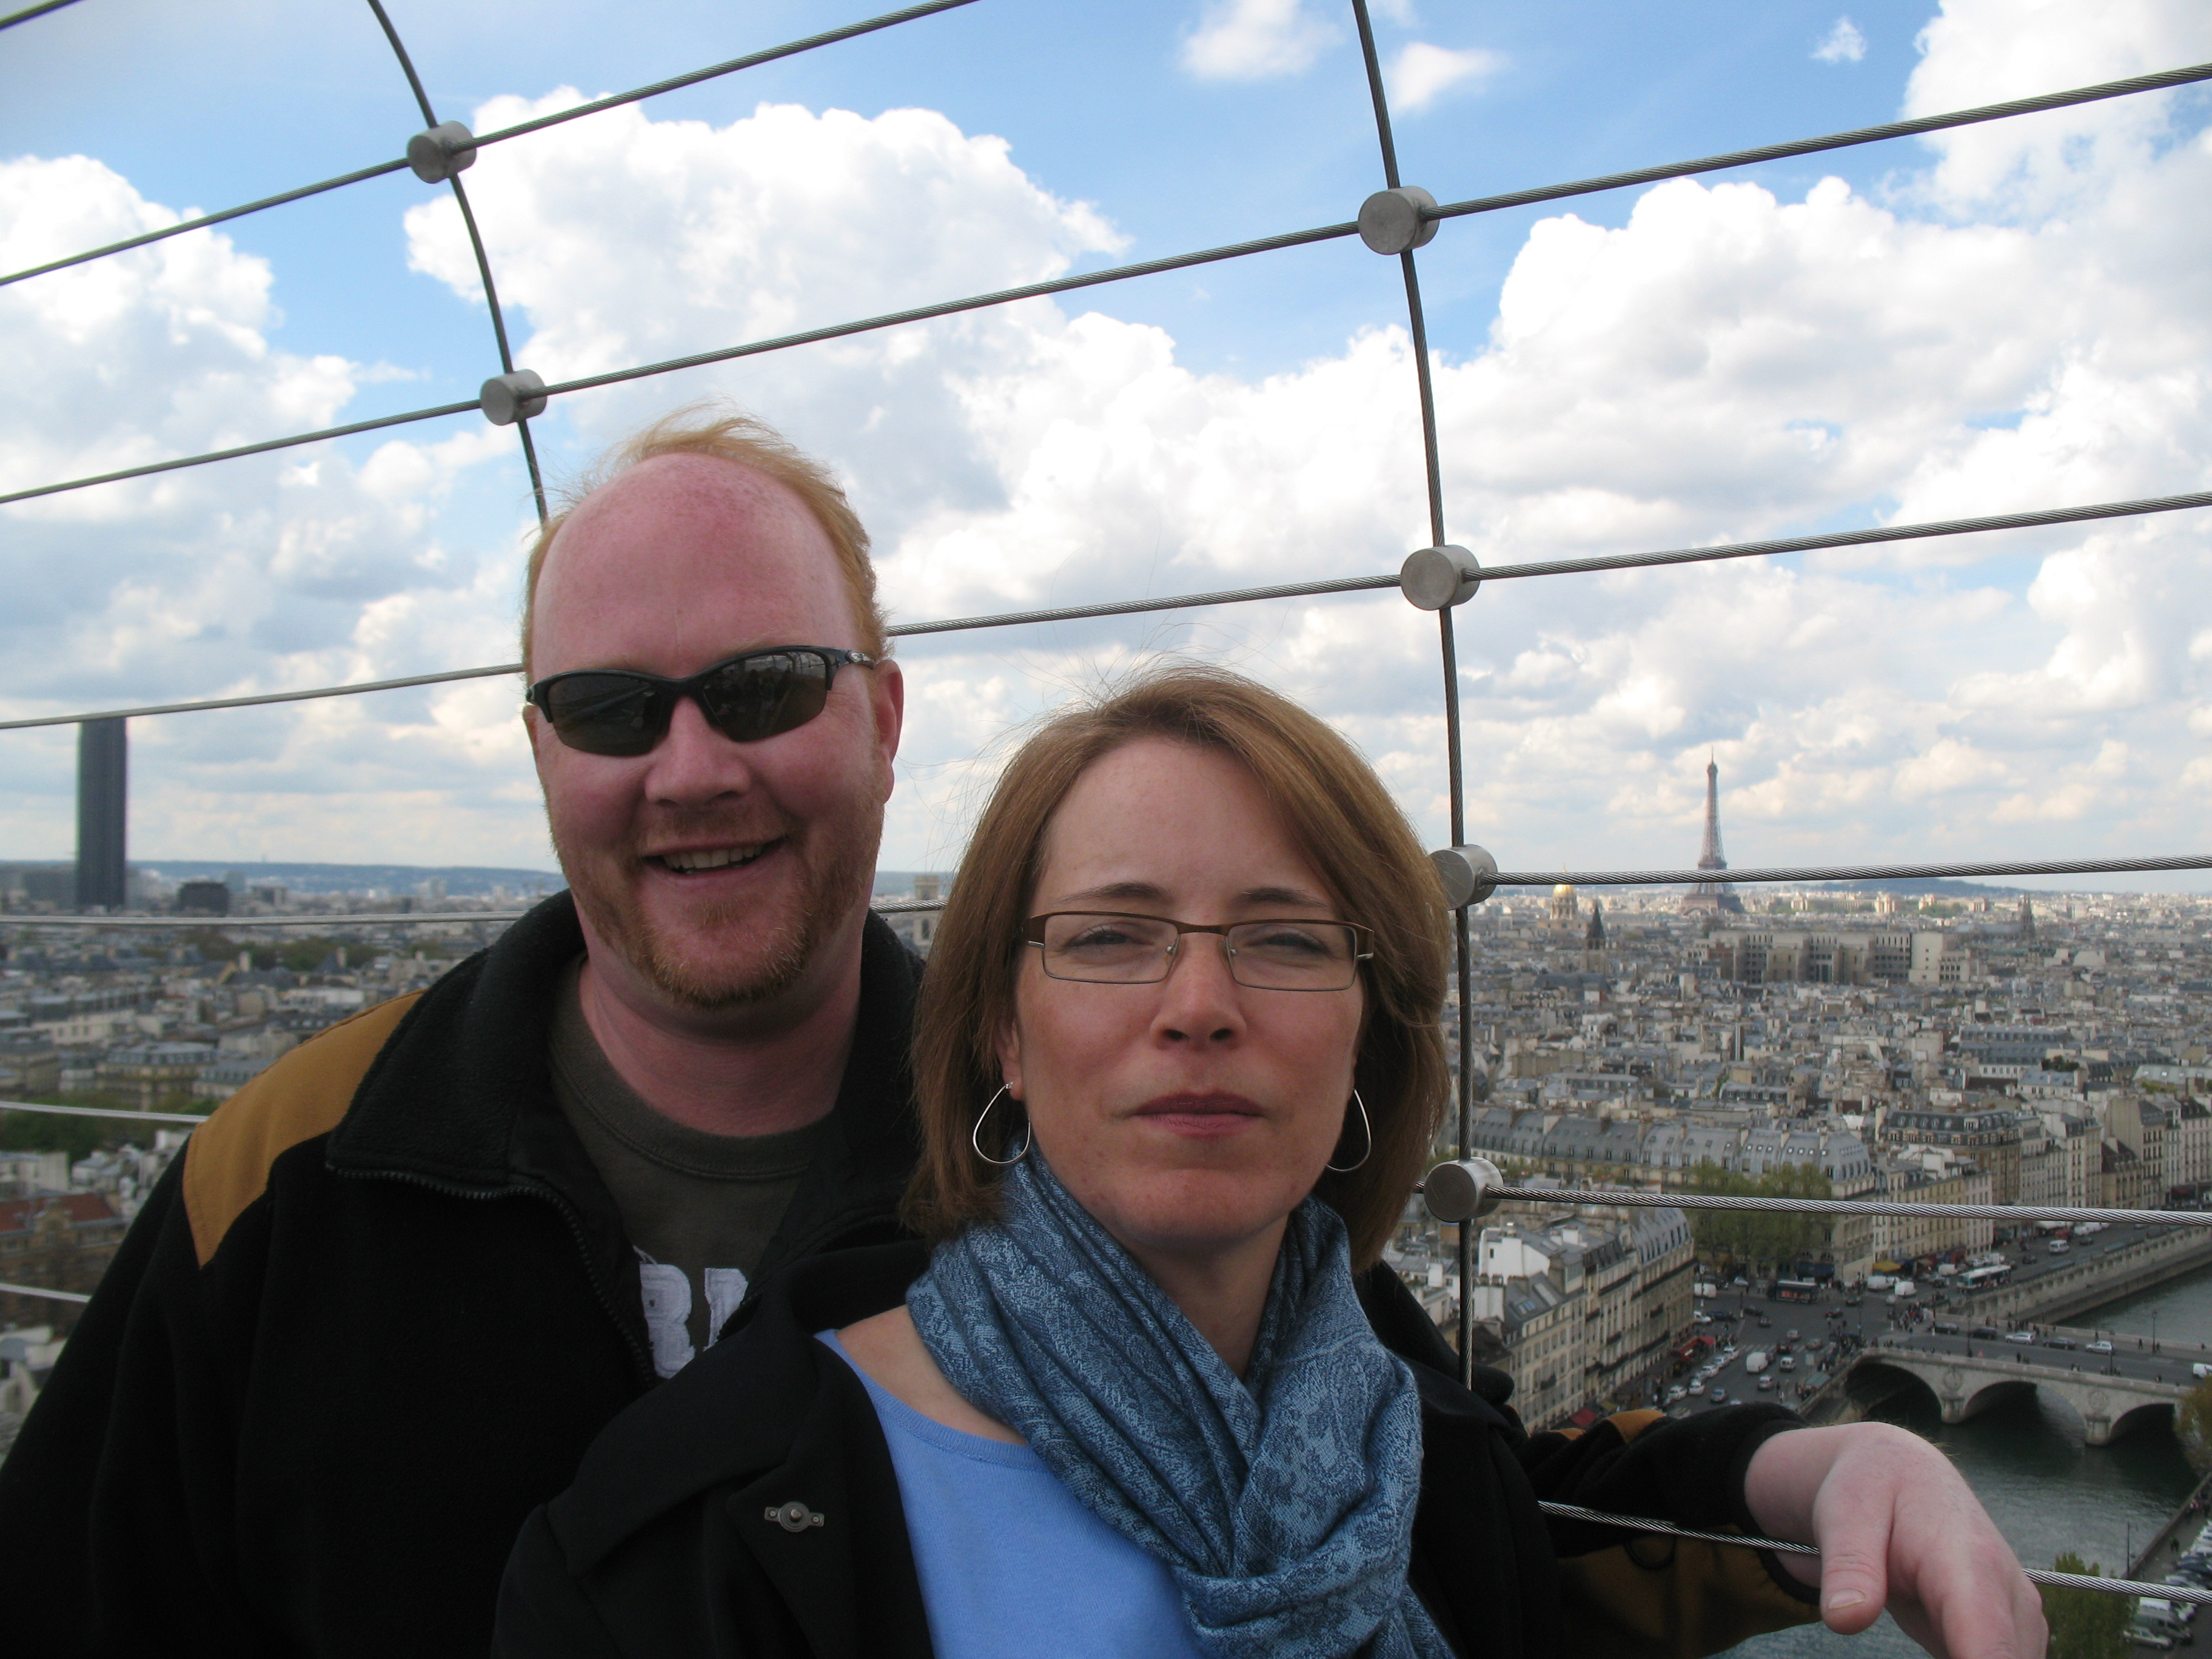 Colonel Josée Robidoux relaxes with husband Major Shaun Funk in Paris, France in April 2012 while she was on leave from her tour in Afghanistan. Photo courtesy Colonel Josée Robidoux.